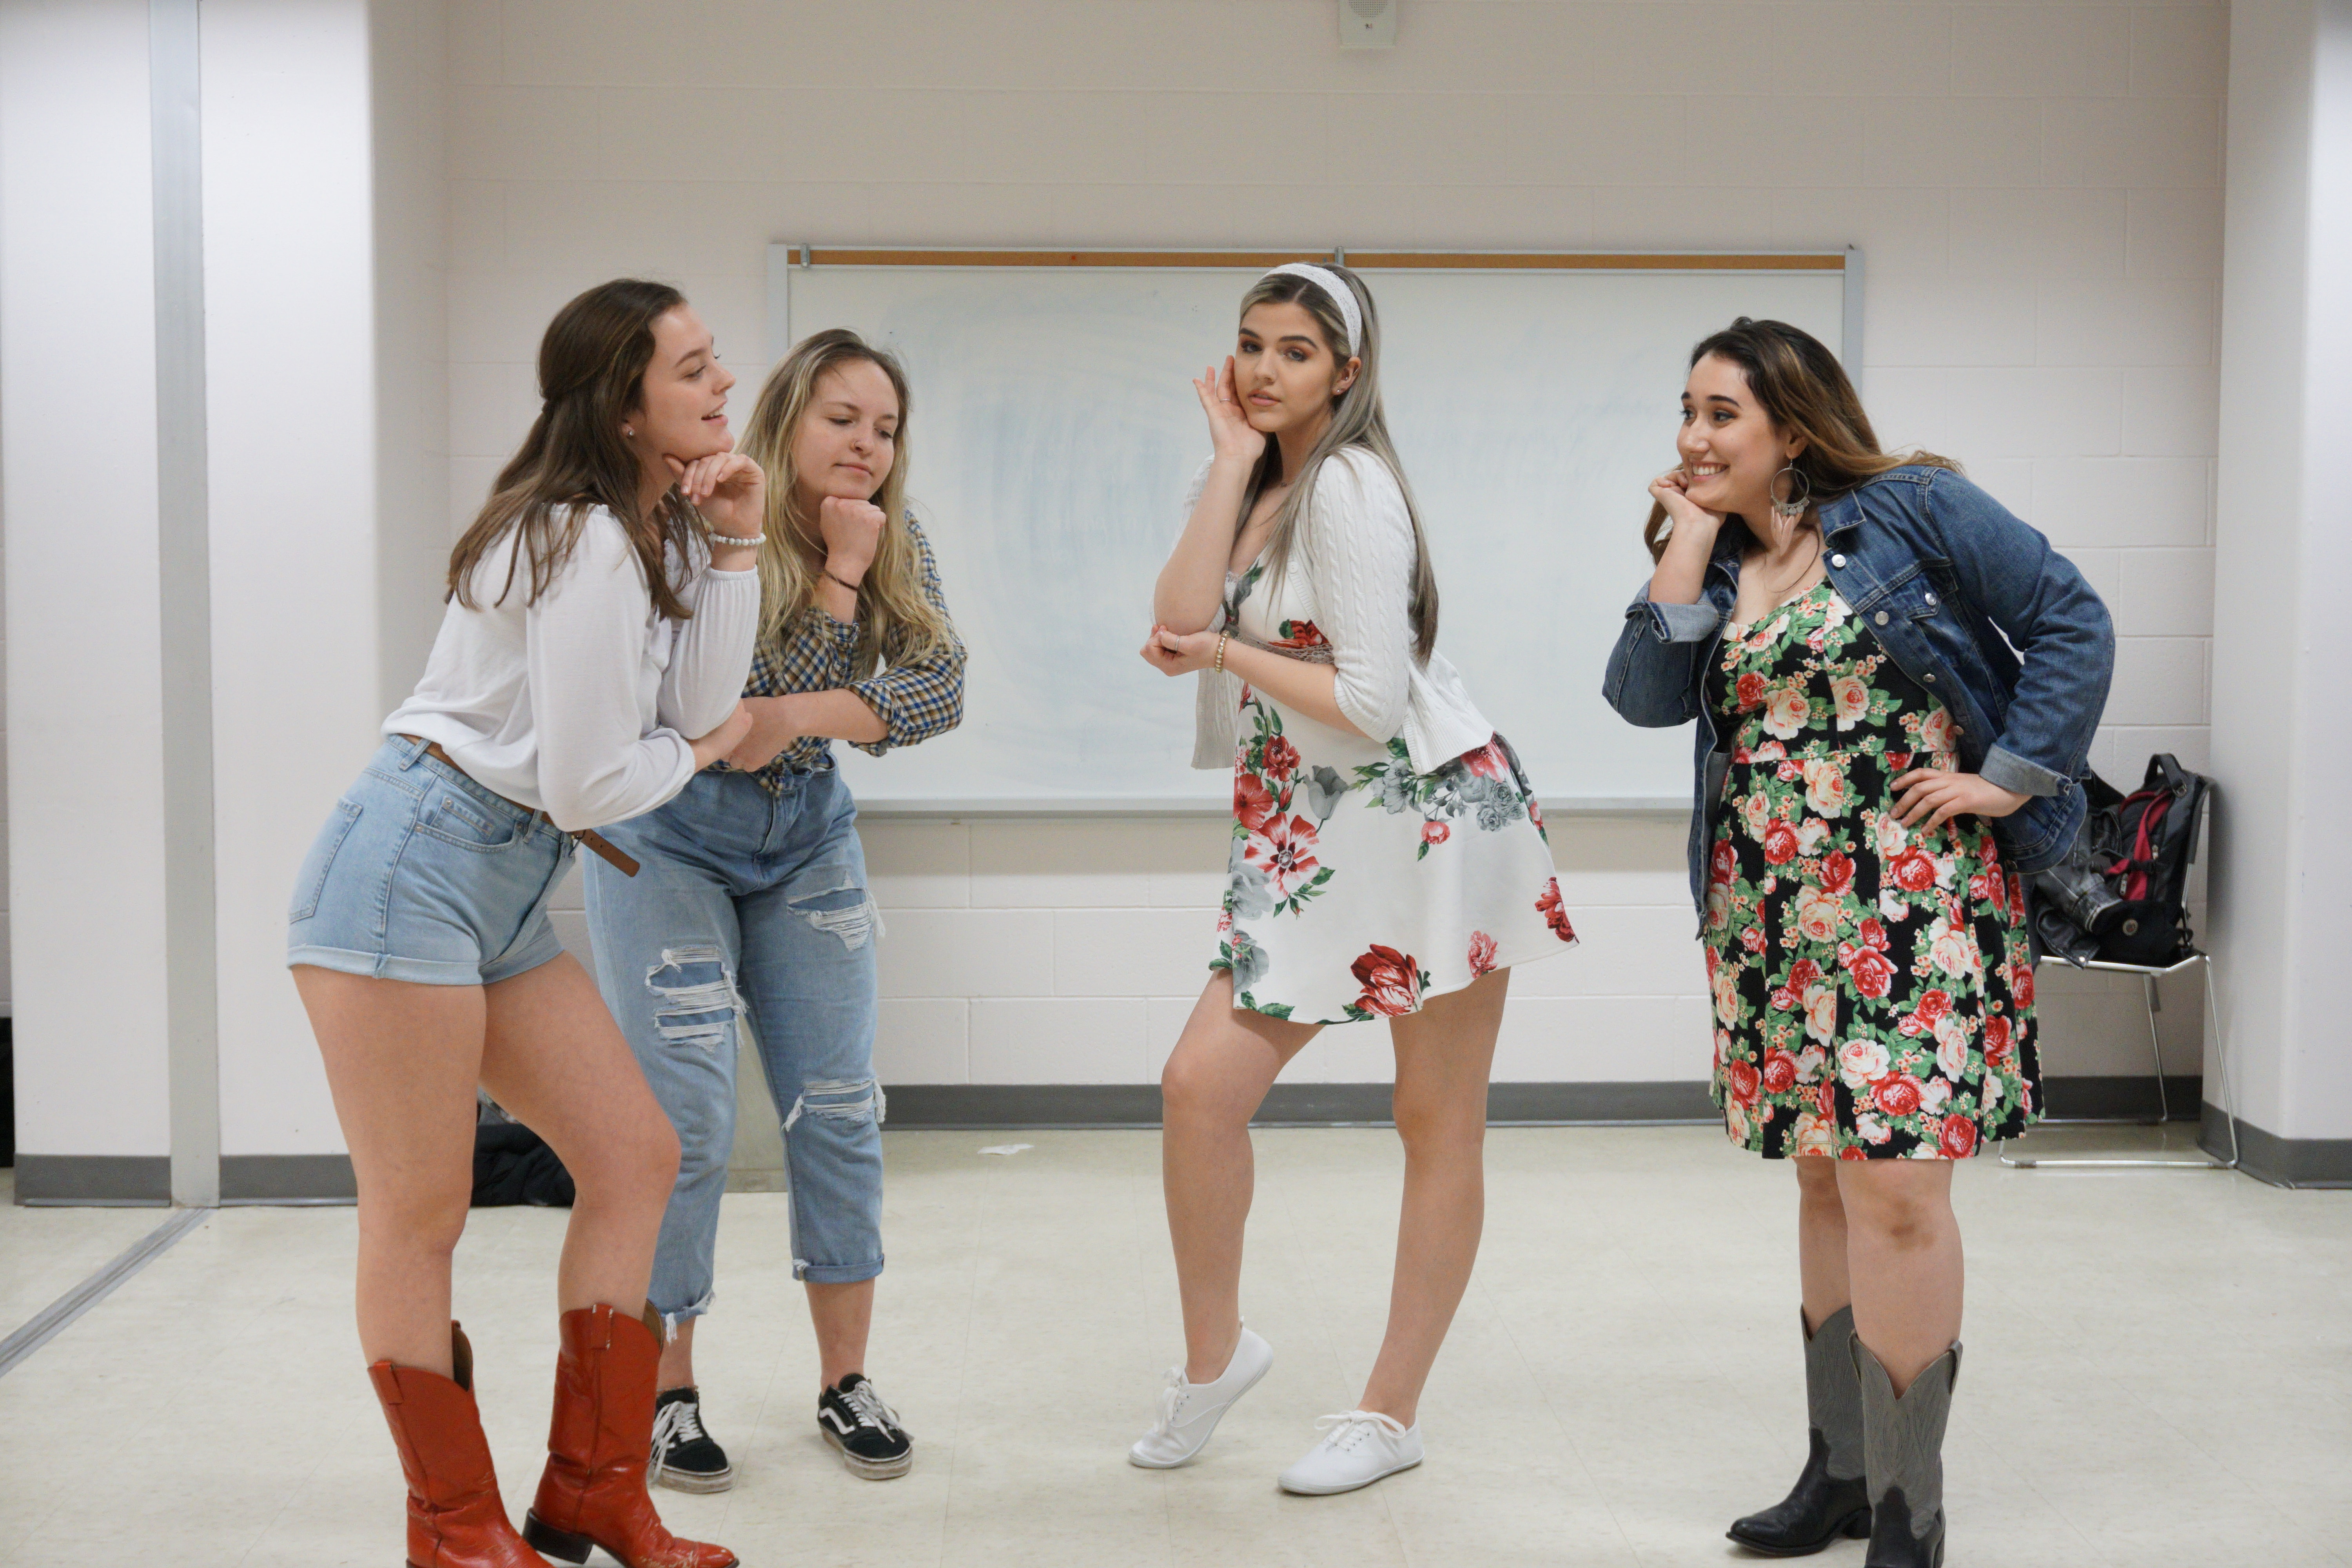 Backstage with Brock Musical Theatre: Kicking Off Footloose